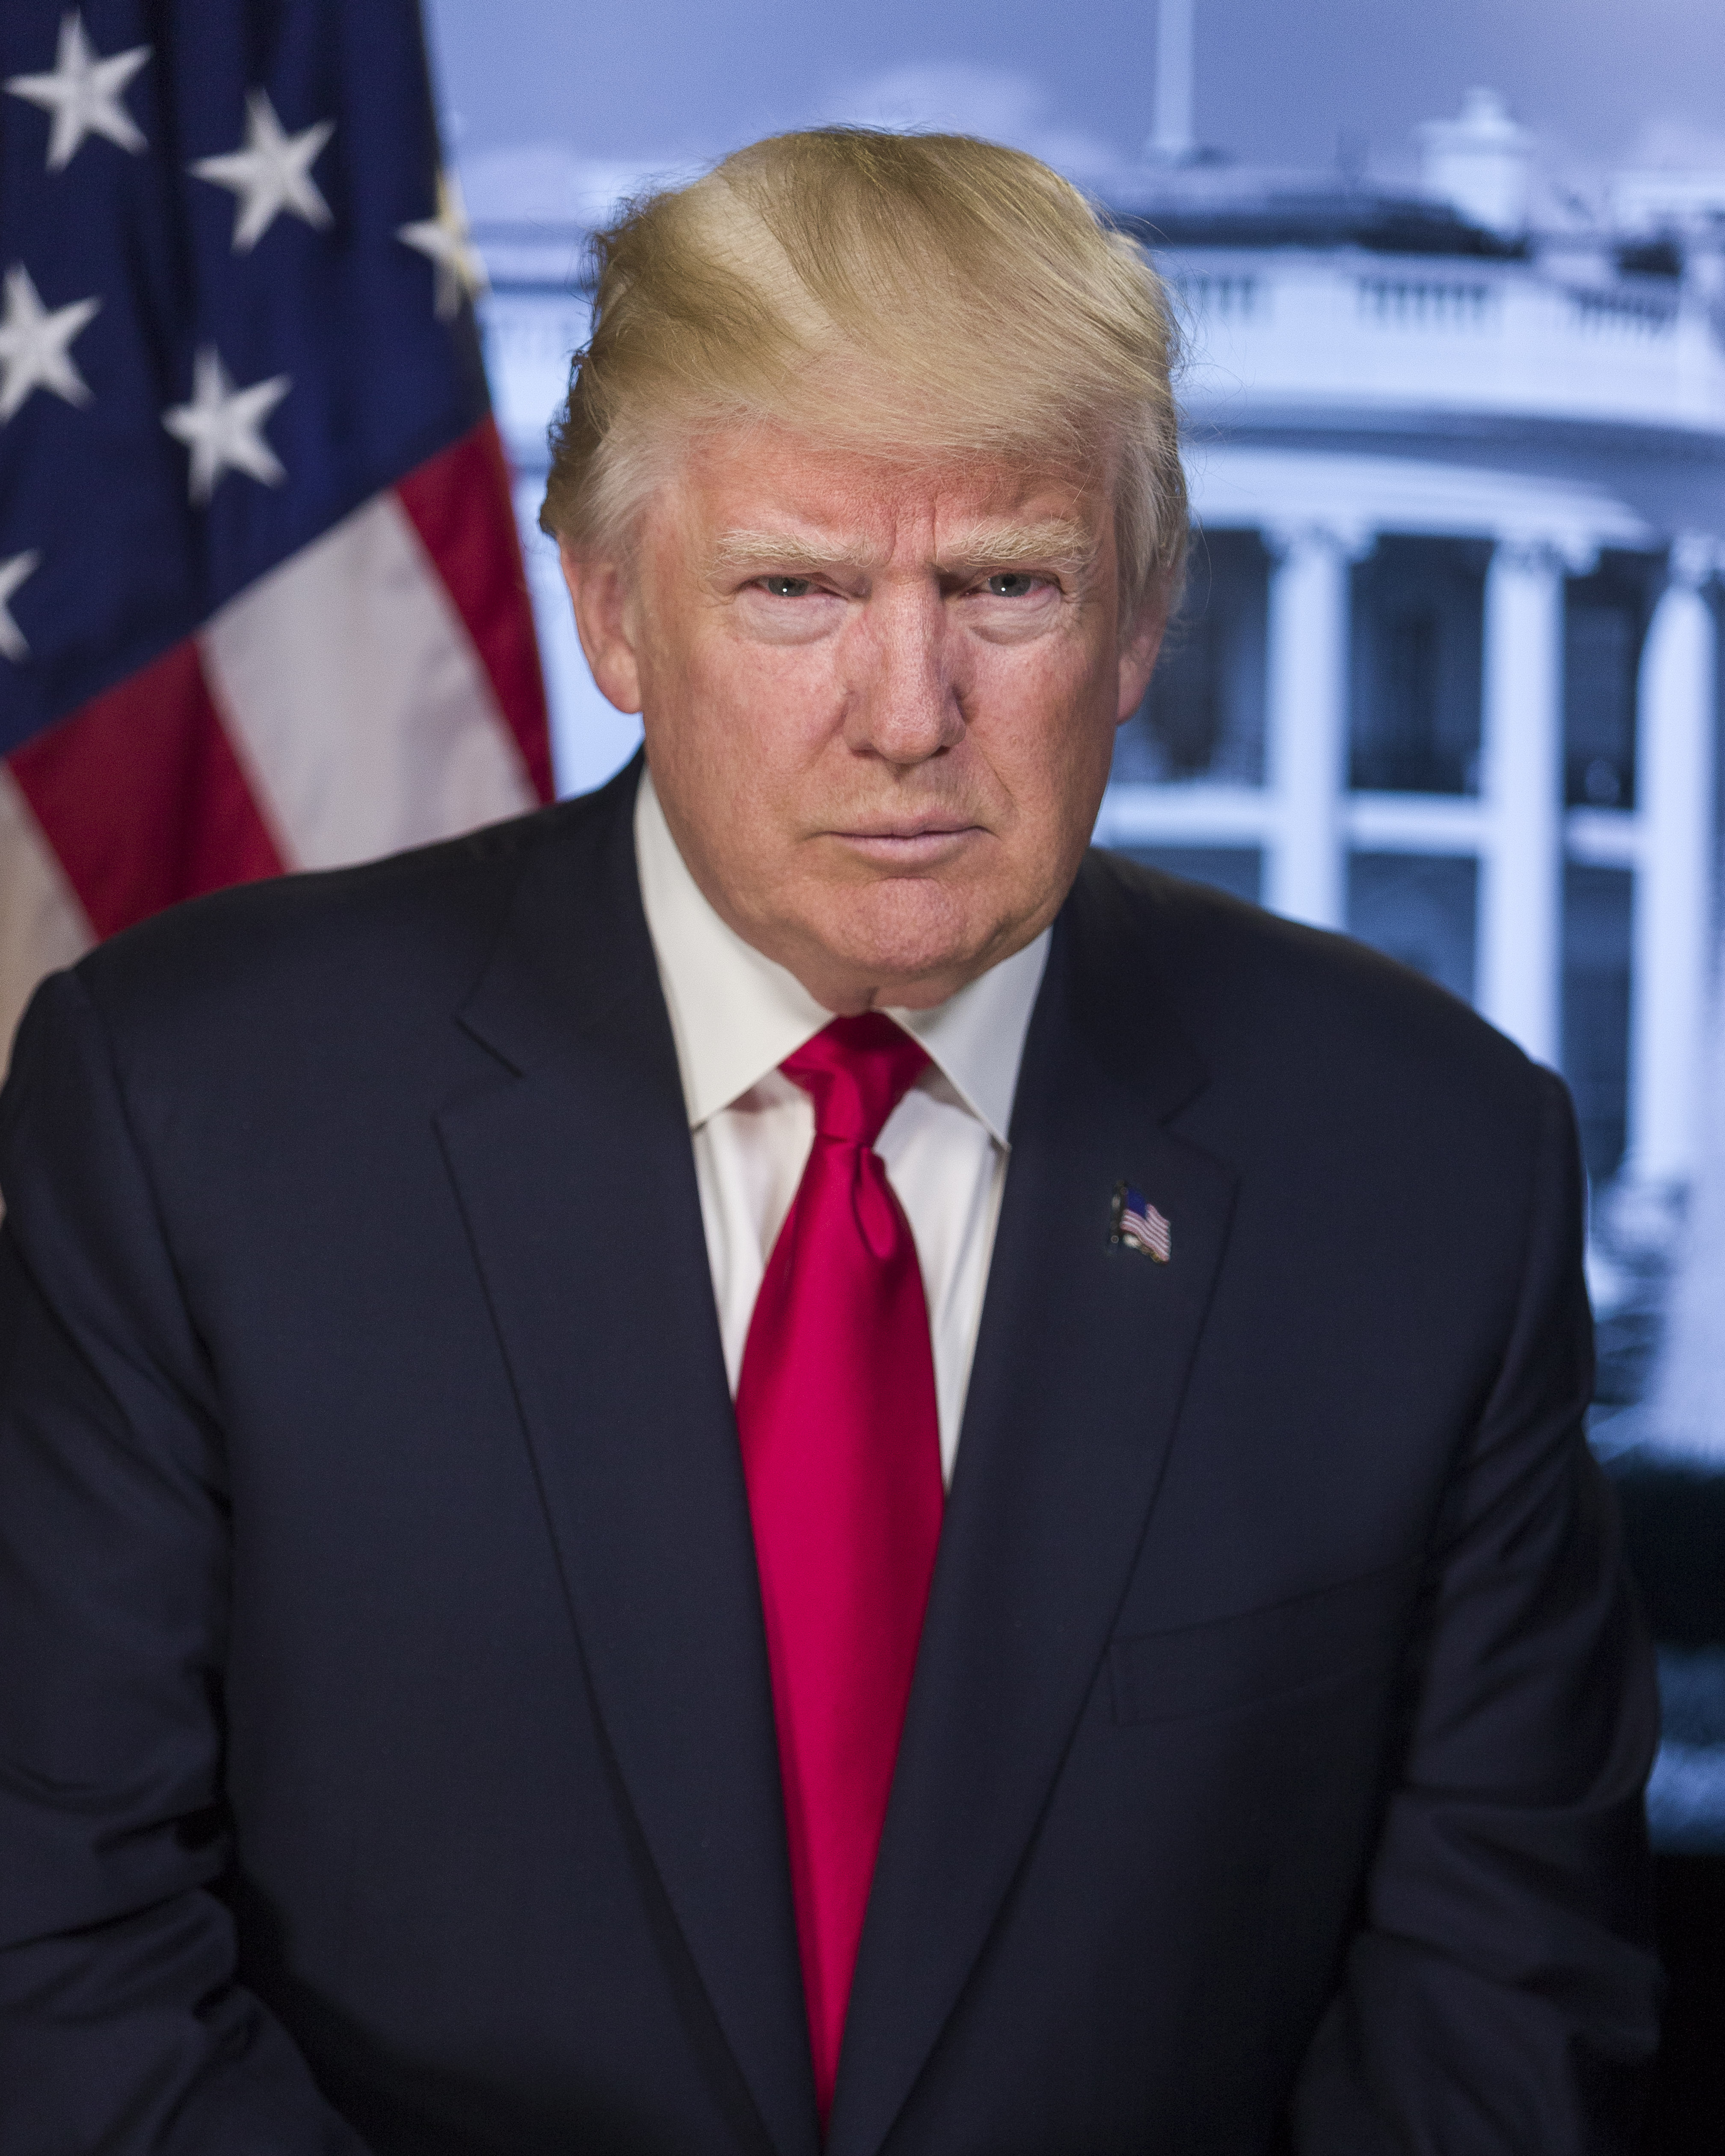 trump red tie photo - 1